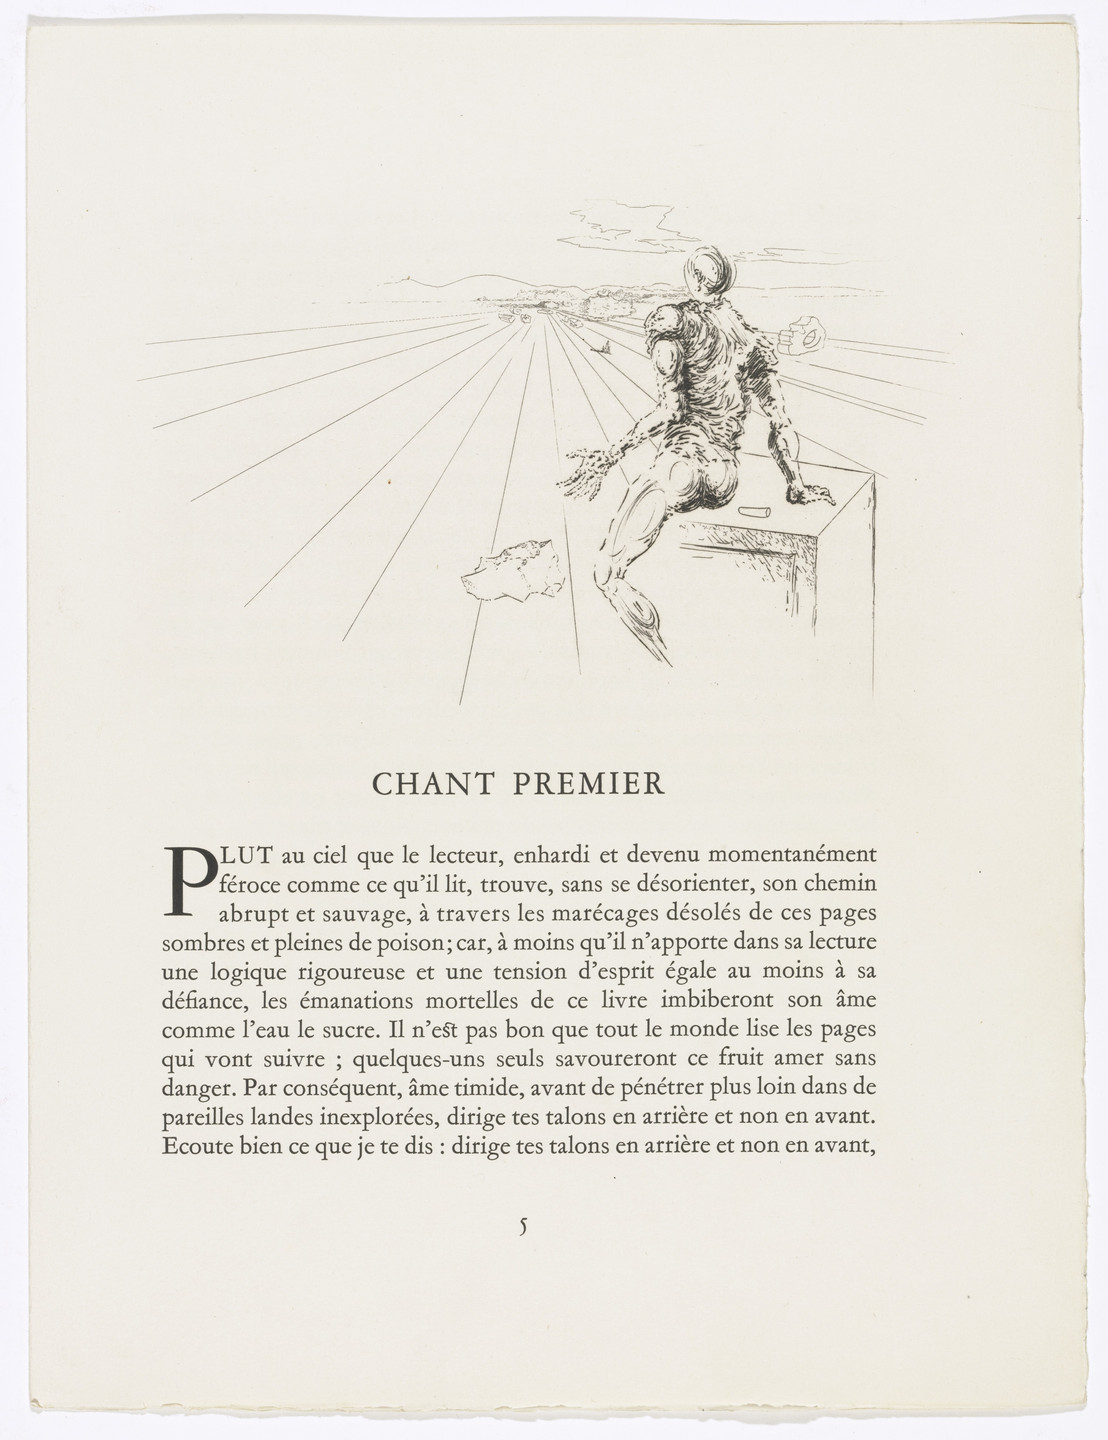 Salvador Dalí. Headpiece (page 5) from Les Chants de Maldoror (The Songs of Maldoror). 1934